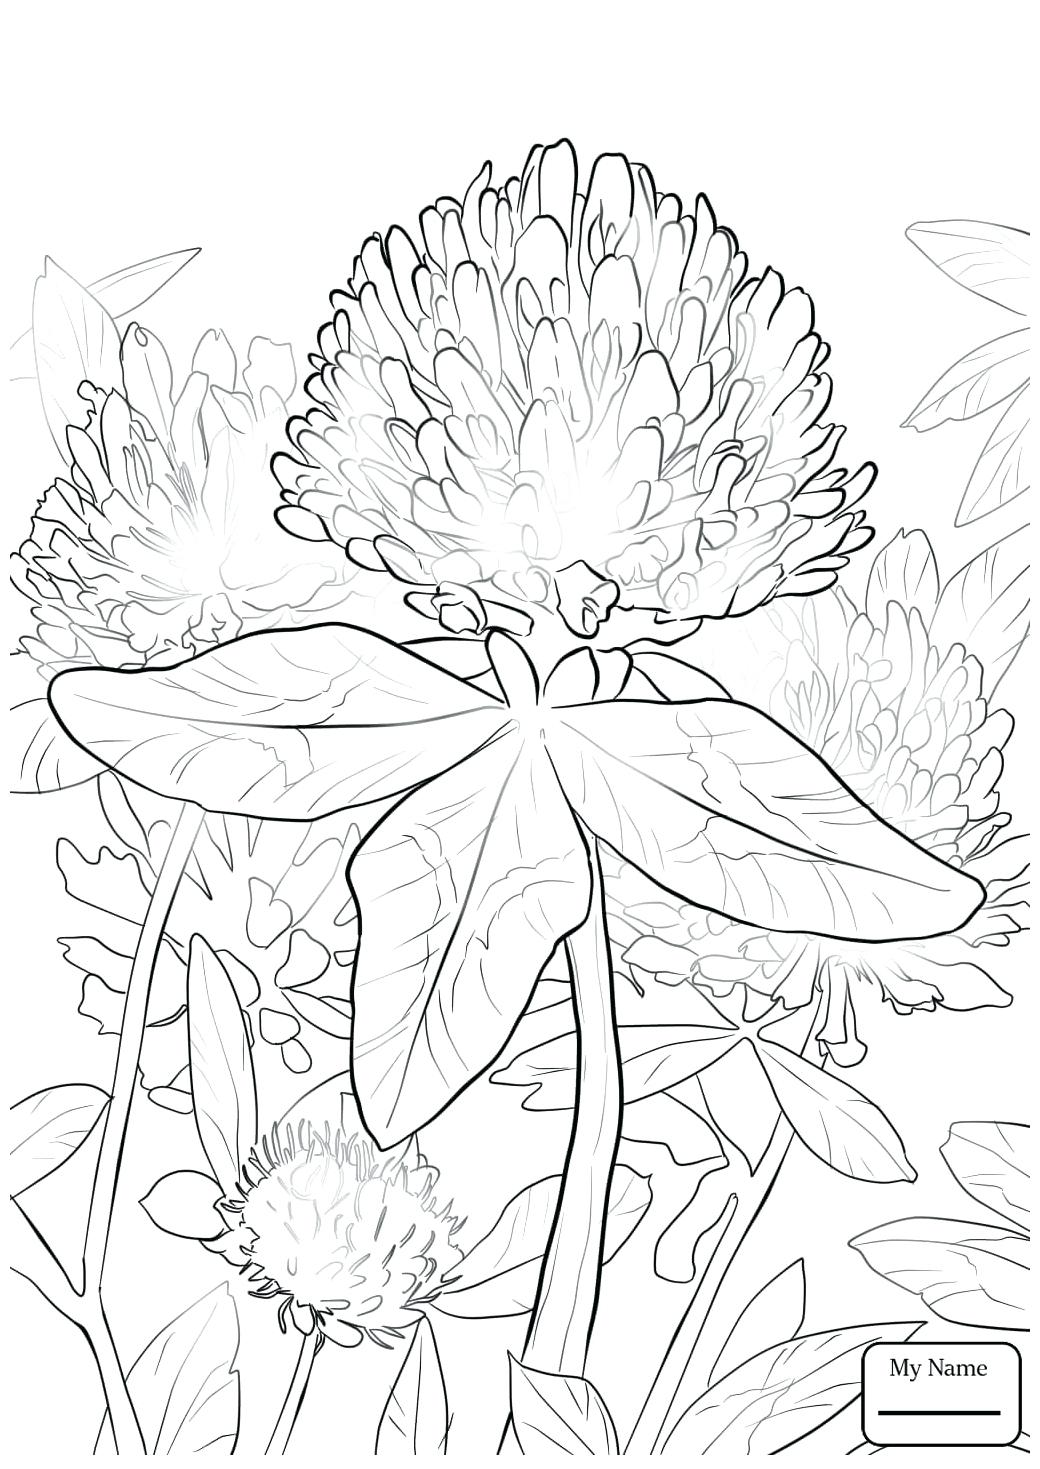 1040x1469 Largest Leaf Clover Coloring Page Pages For Kids Animals Free St